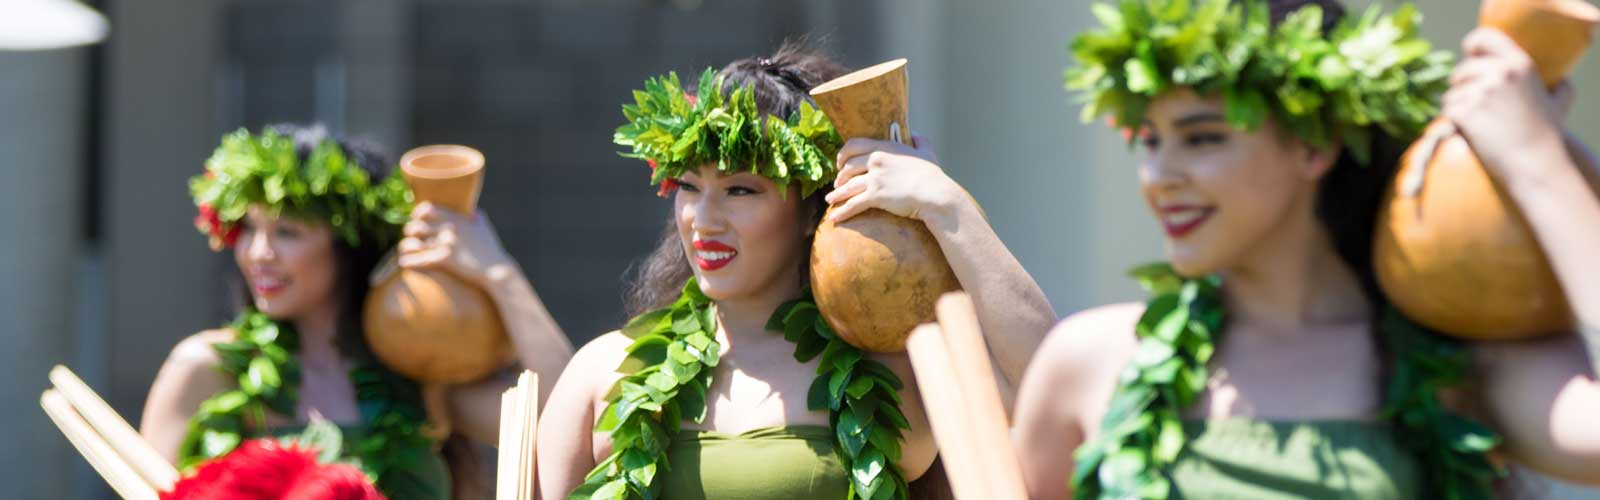 Members of the Polynesian Club of Fresno perform tradition island dances during the luau celebration at Clovis Community College on April 24